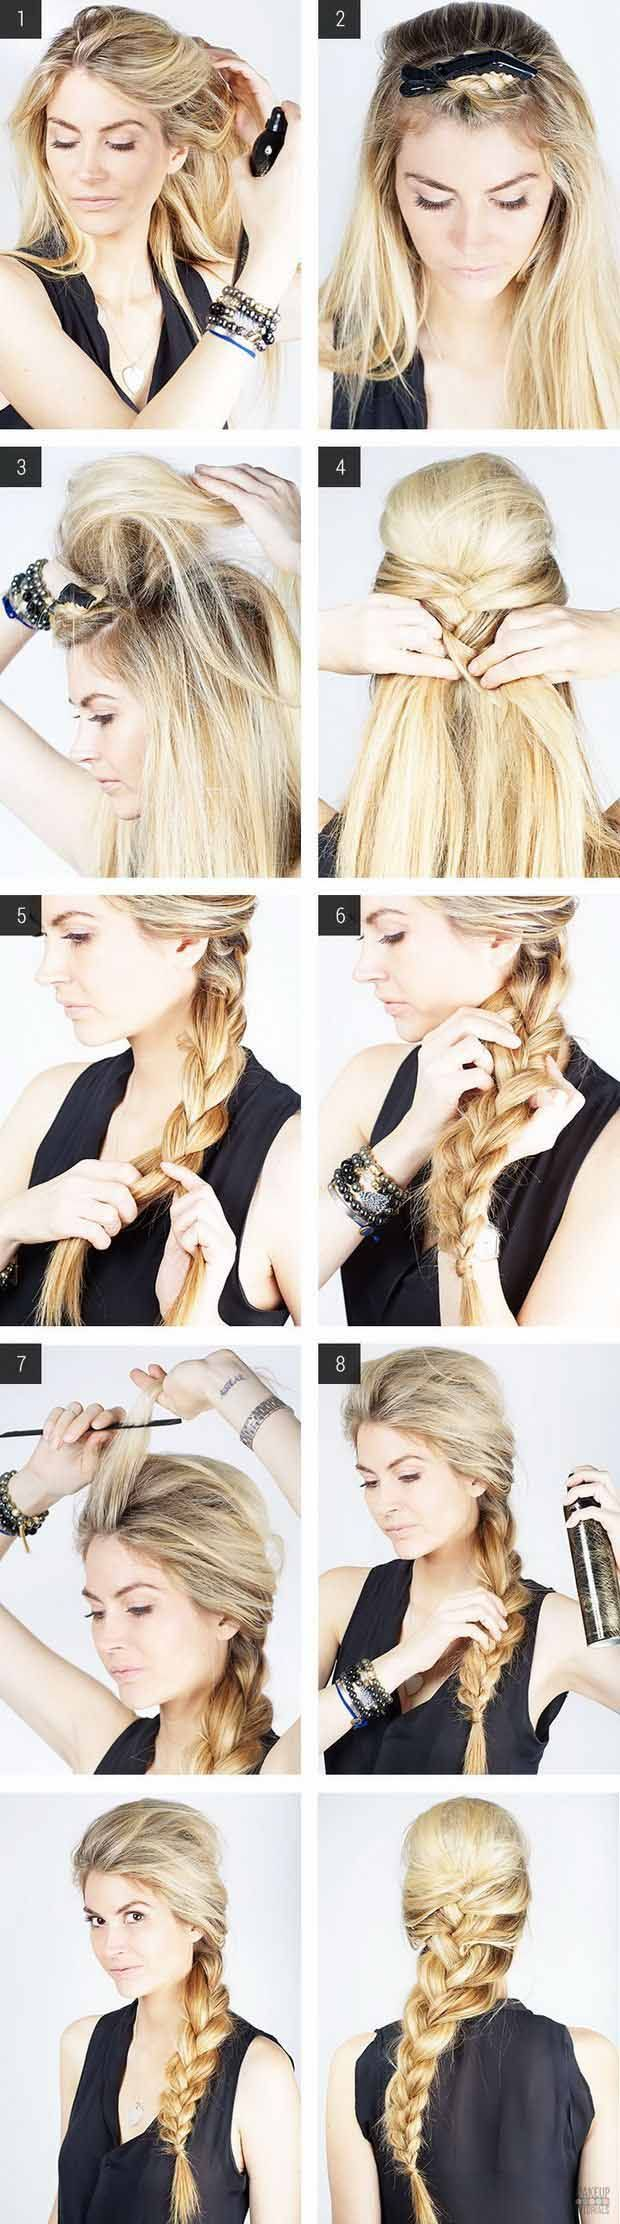 braided hair tutorials braid hair tutorials braid hair and